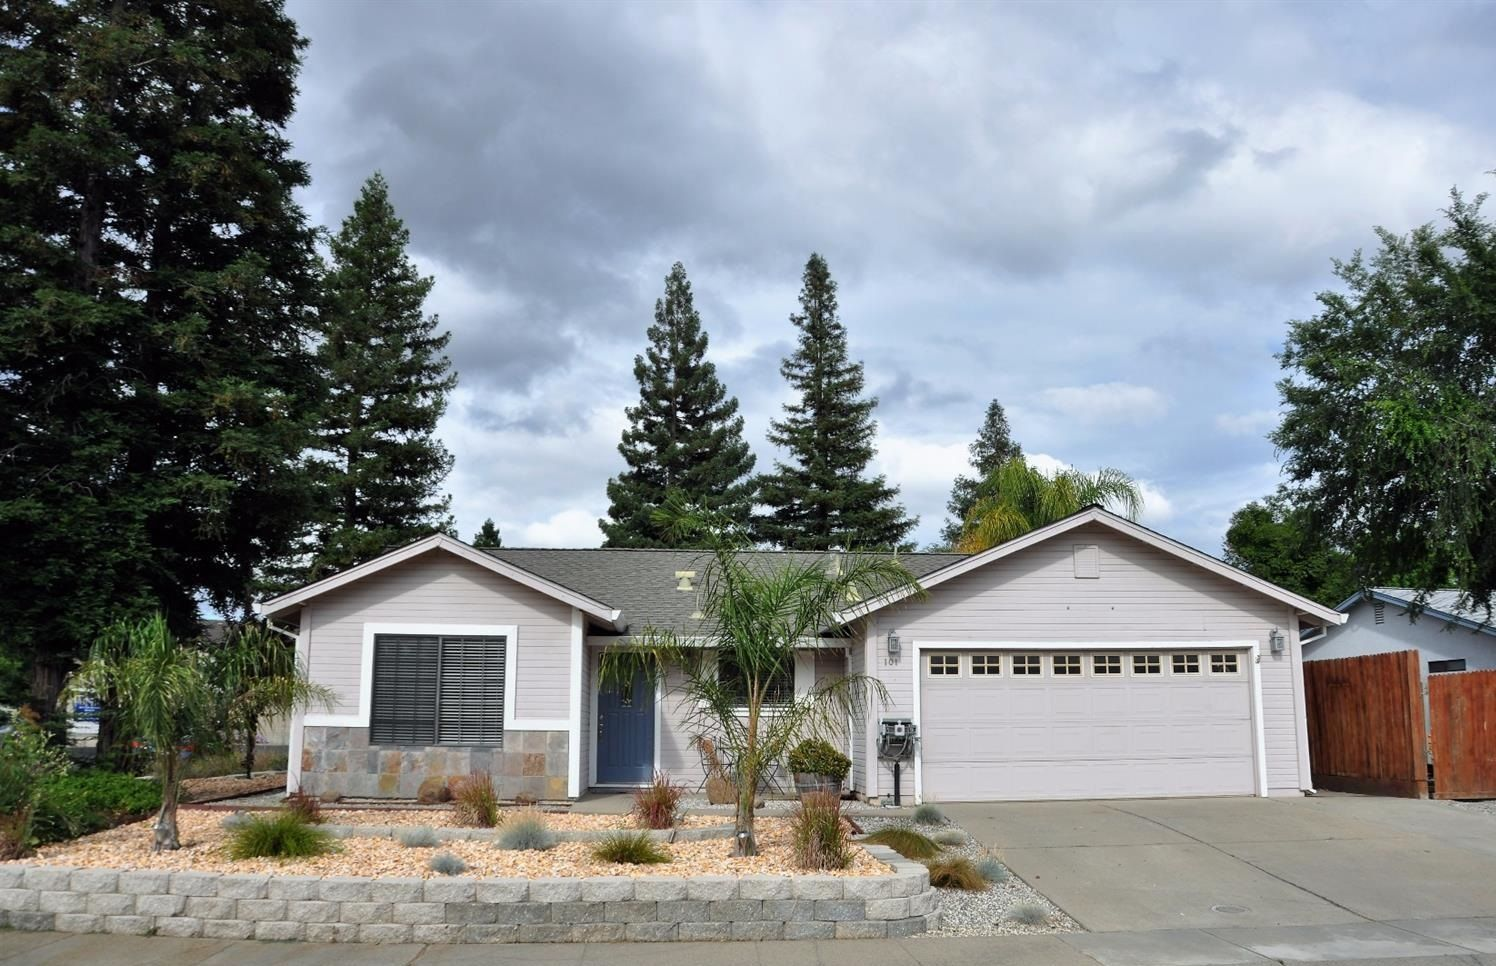 369000 4br 1466ft2 new listing amazing home on